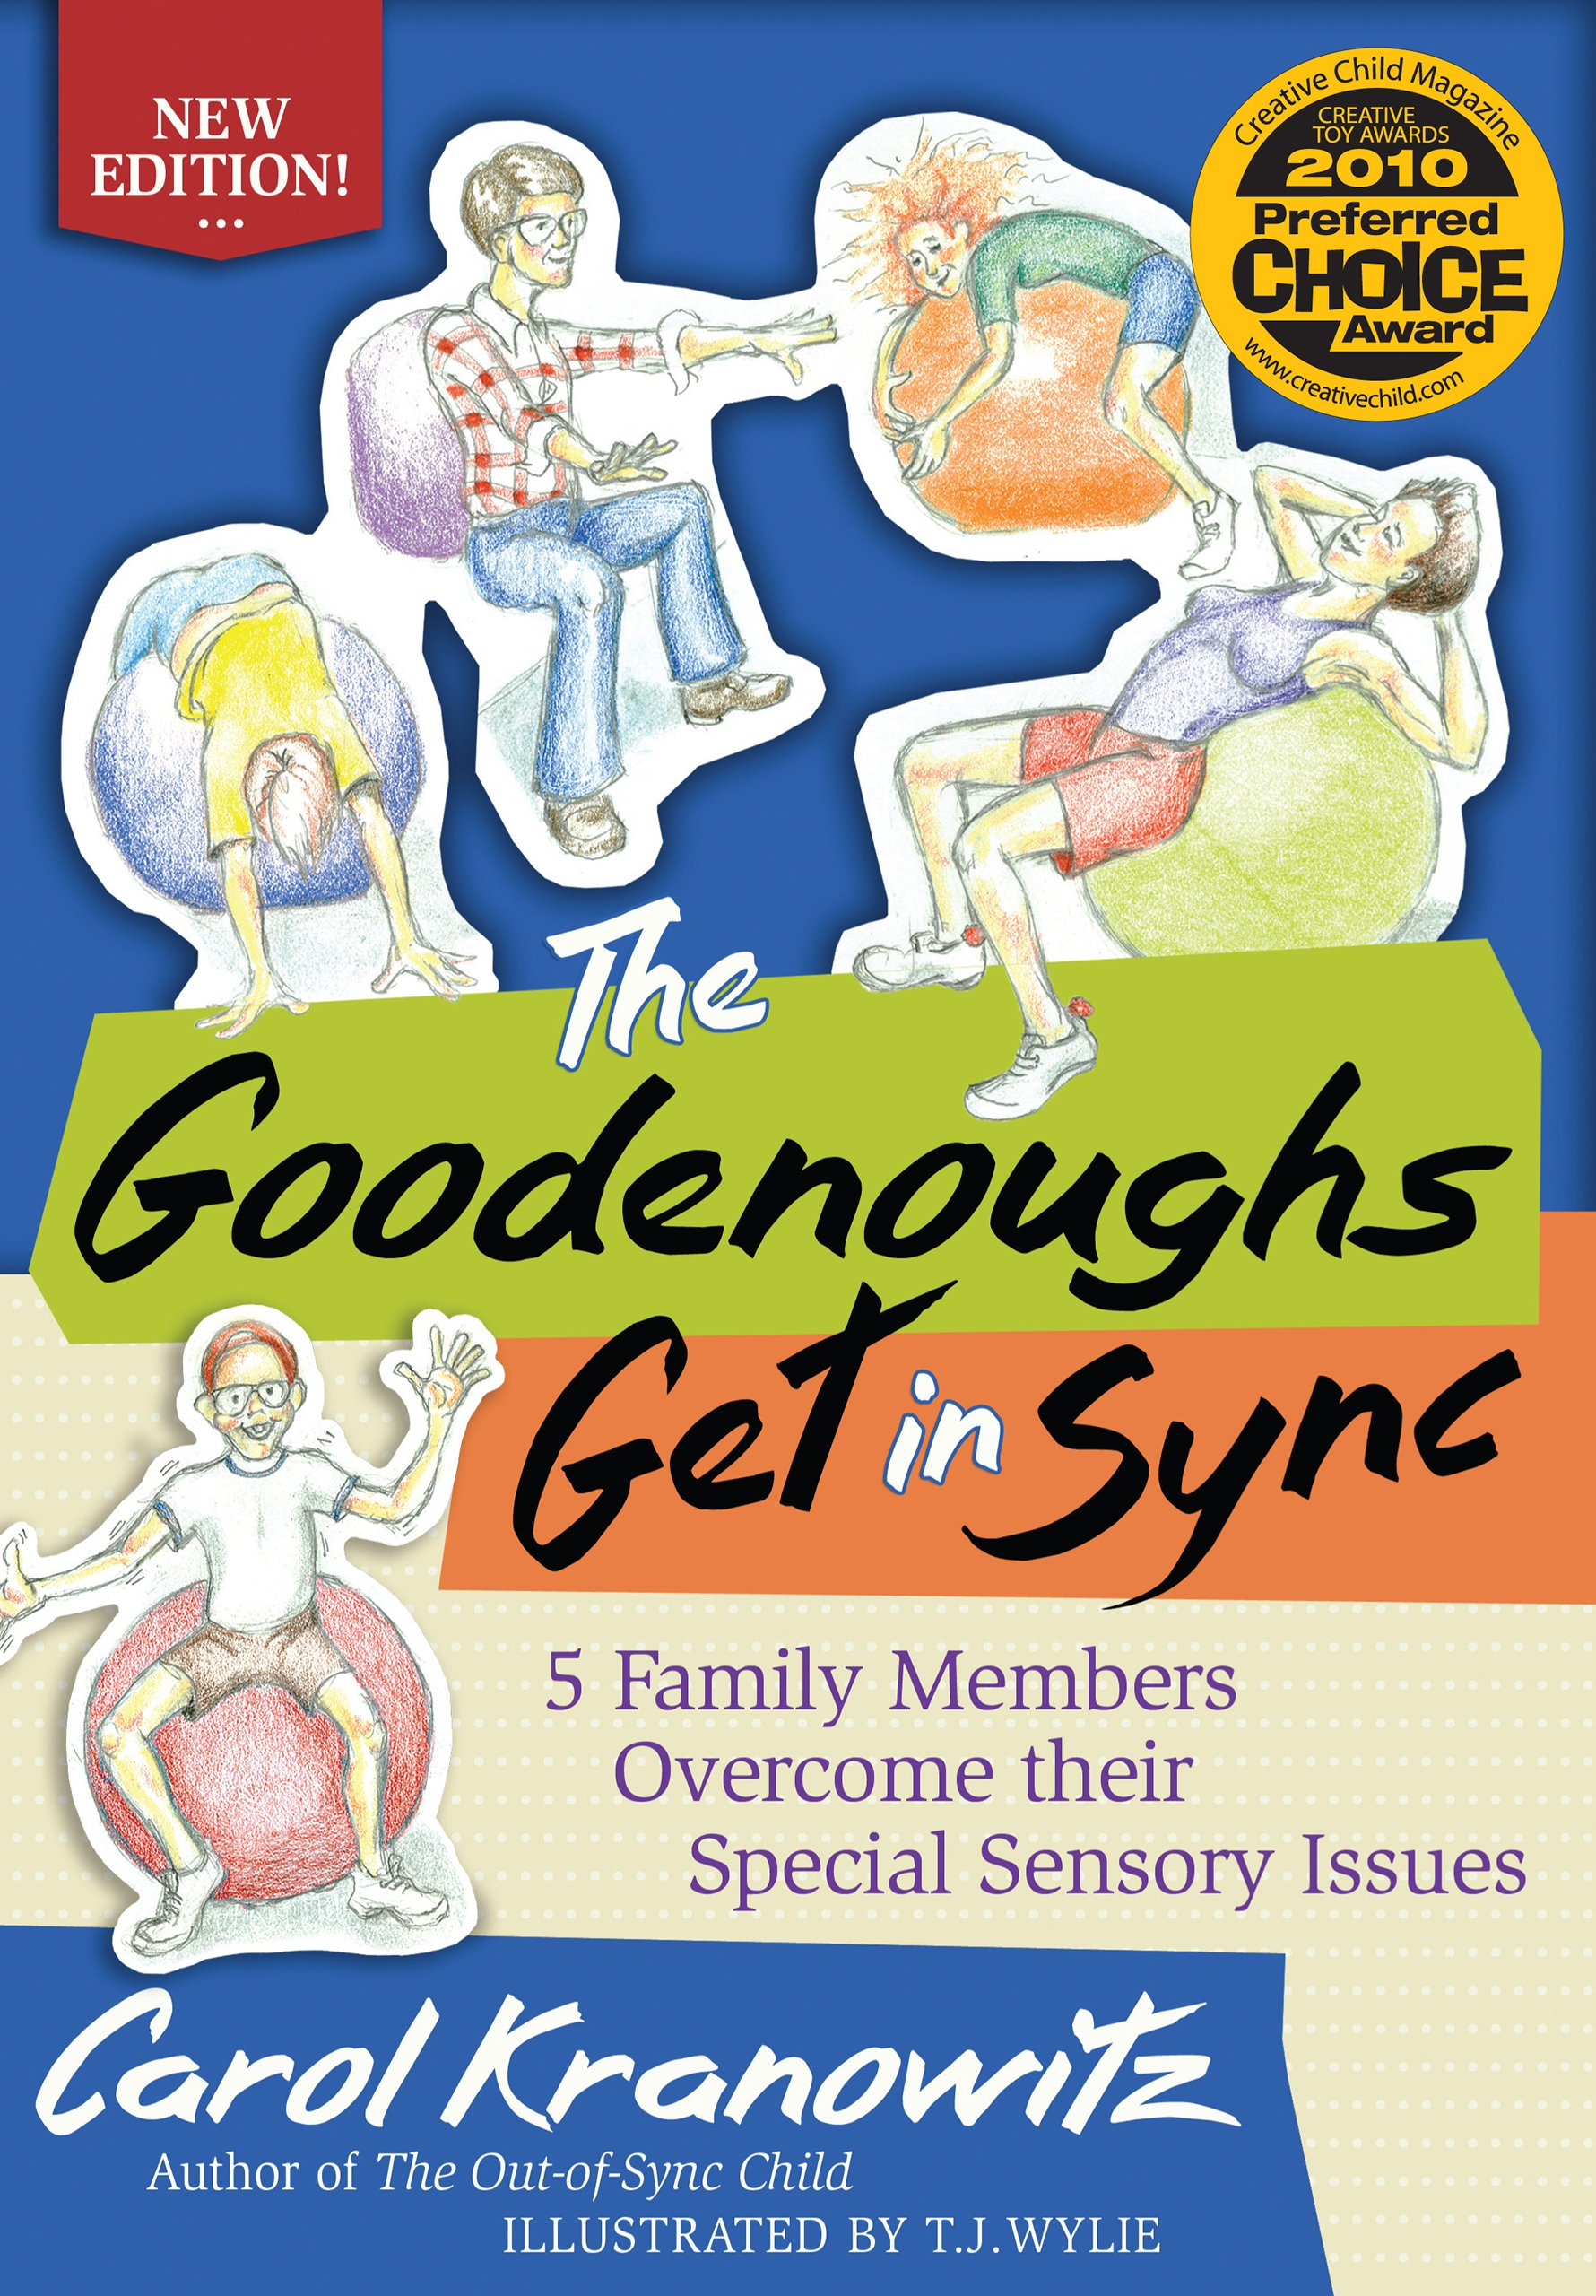 The Goodenoughs Get in Sync: 5 Family Members Overcome their Special Sensory Issues PDF